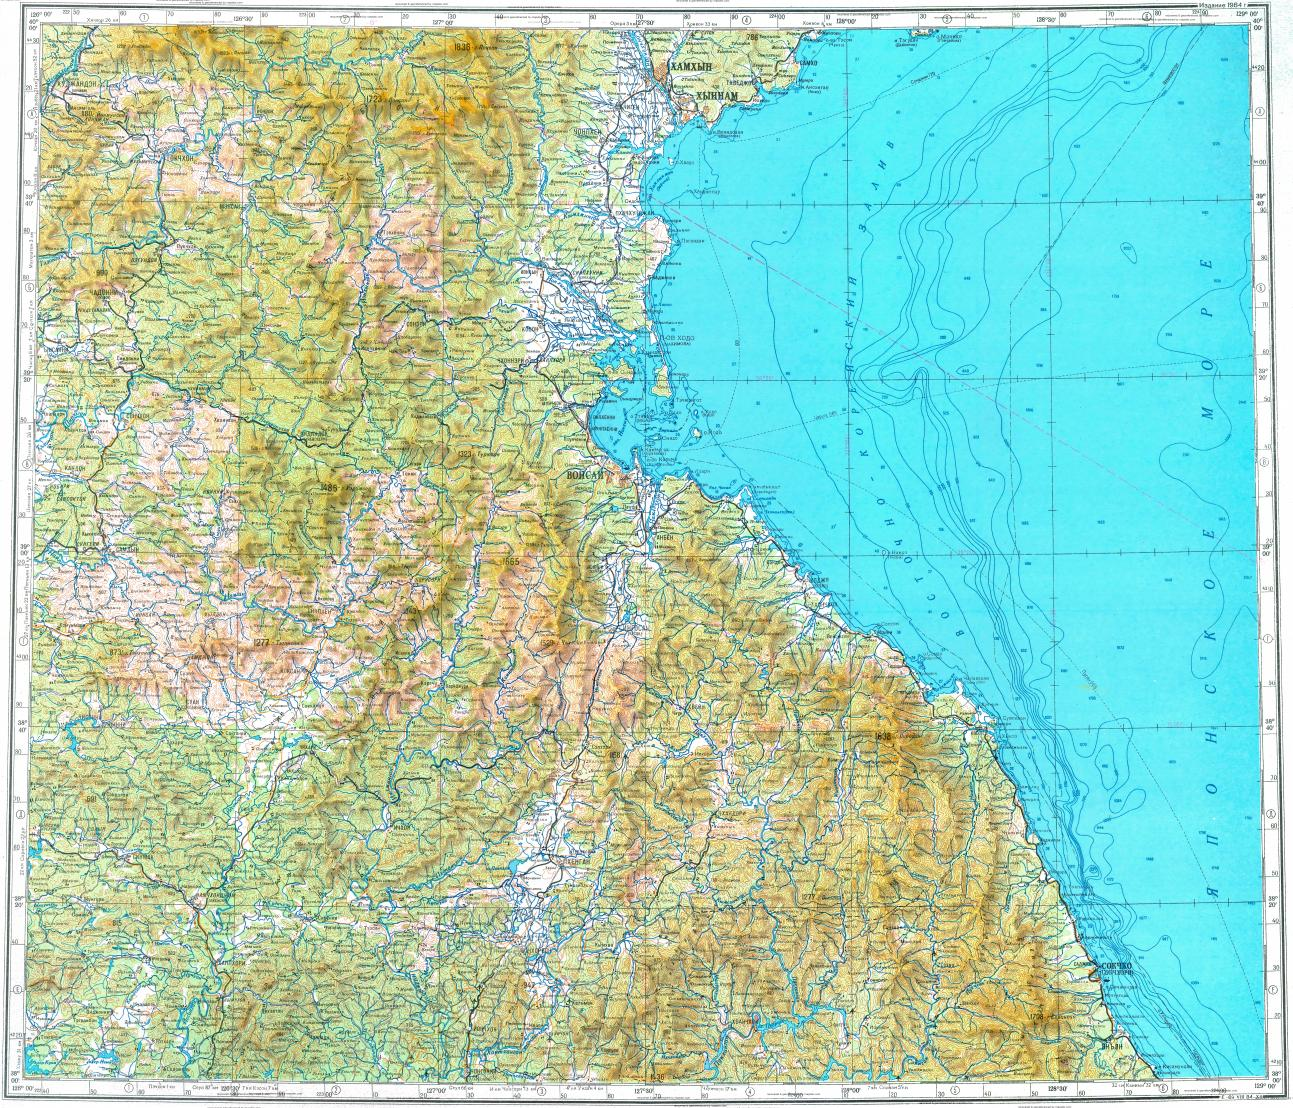 Download topographic map in area of Wonsan Hungnam Hamhung